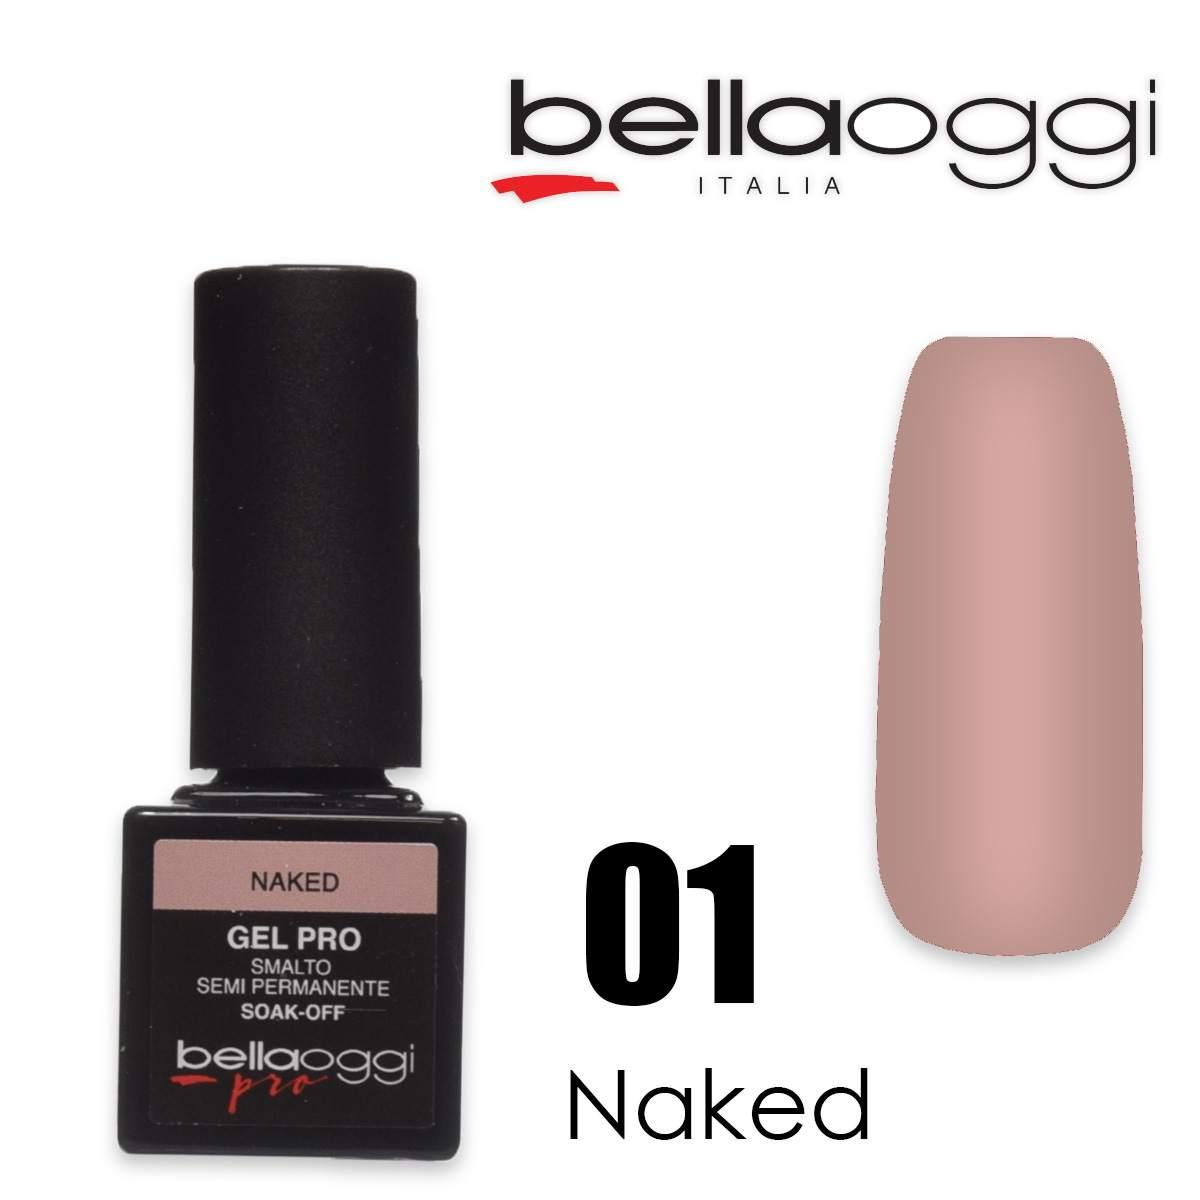 Bella oggi gel pro semipermanente 01 naked